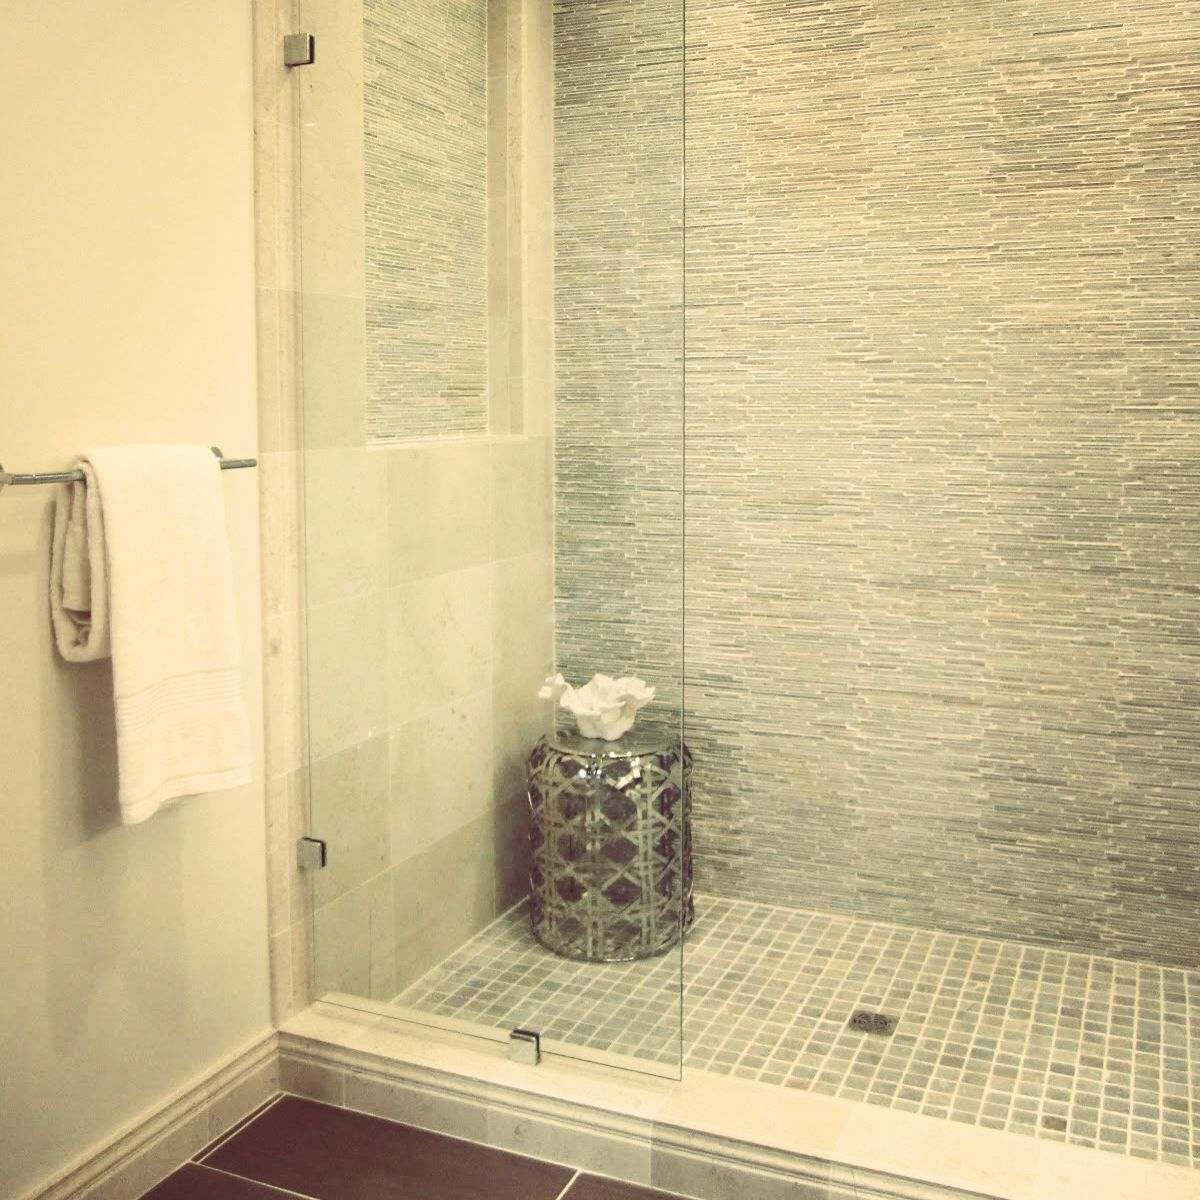 A mosaic textured shower wall | Bathroom | Pinterest | Mosaics ...